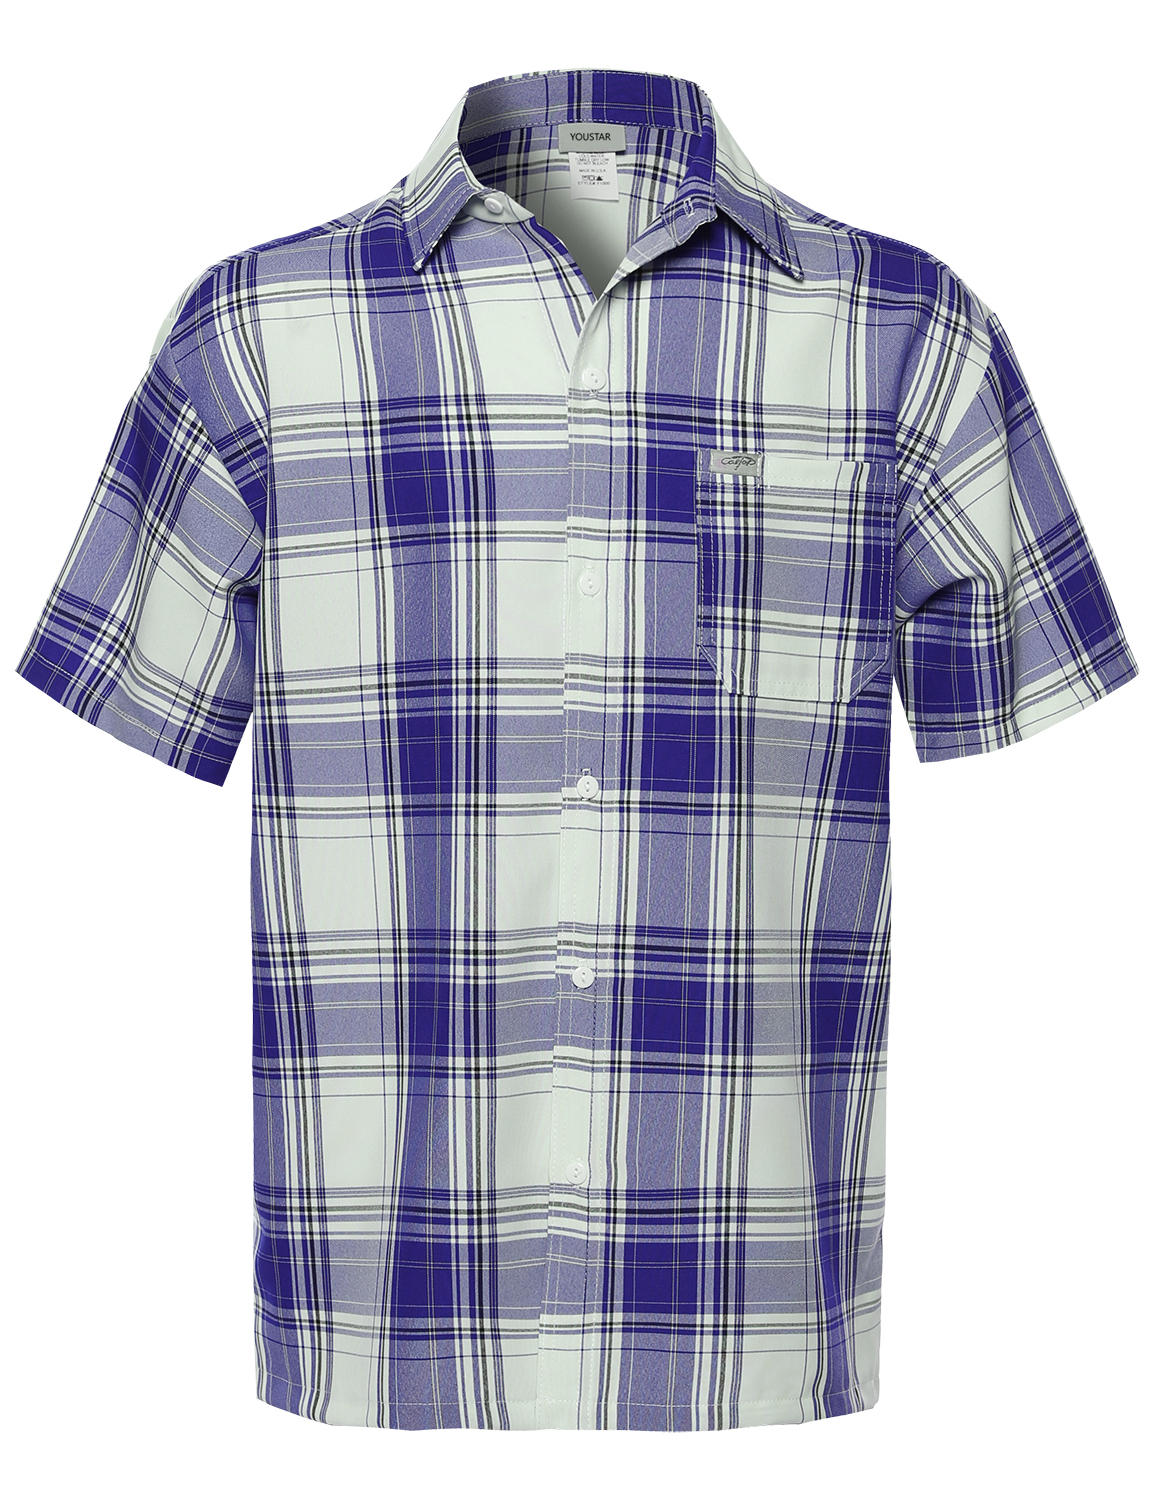 Fashionoutfit men 39 s loose fit plaid checkered short sleeve for Royal blue plaid shirt mens